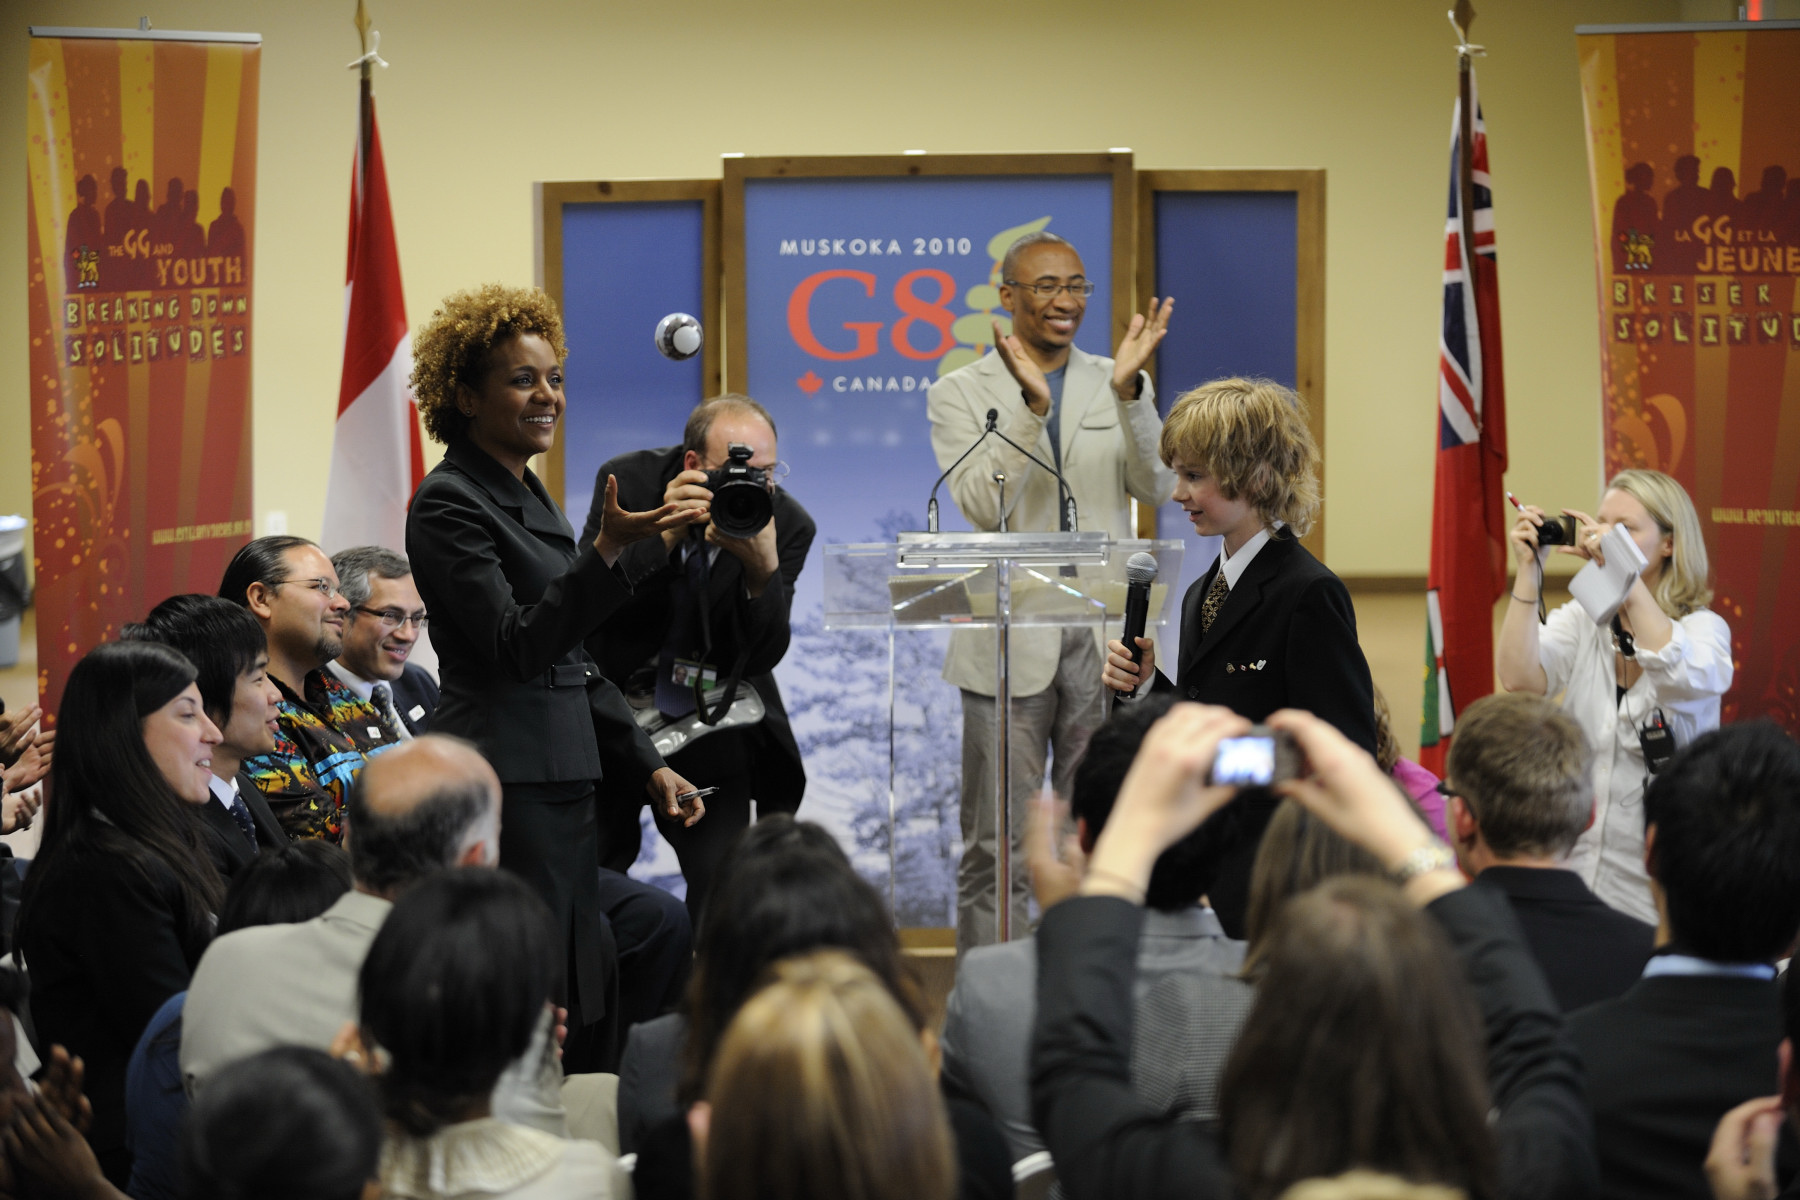 One of the young participates gave a ball to the Governor General.